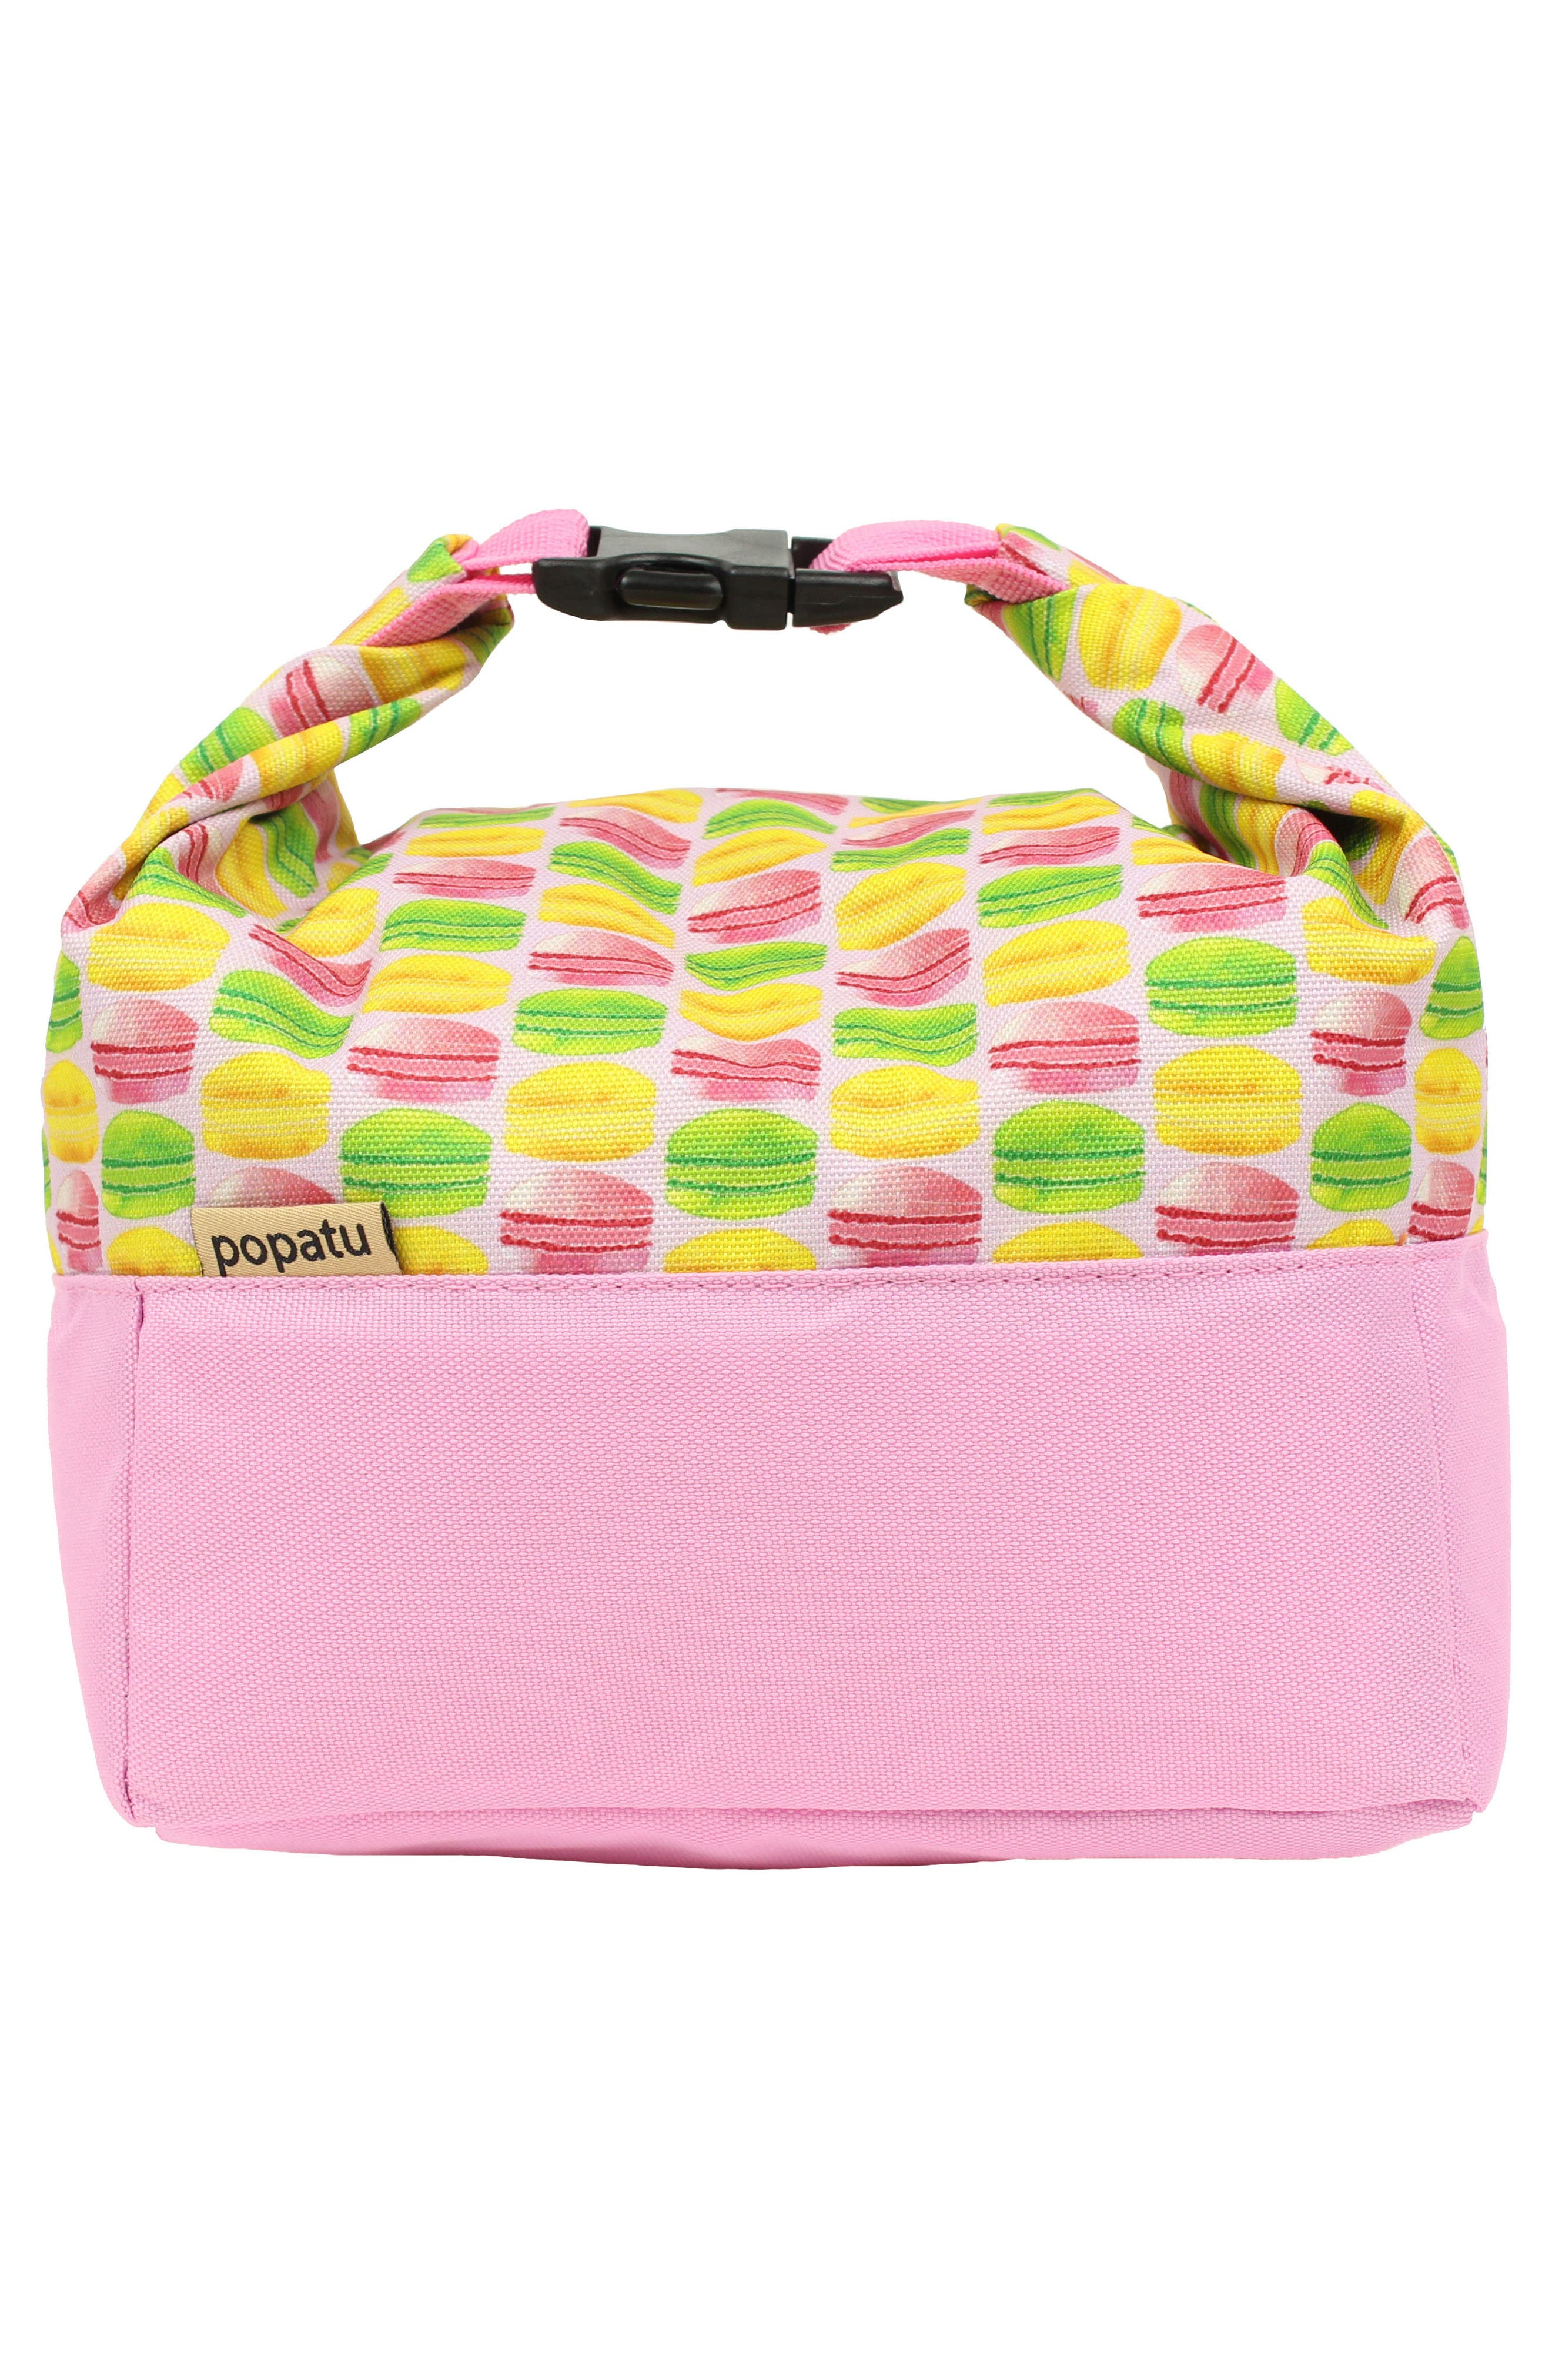 Macaron Print Roll Top Lunch Bag,                             Alternate thumbnail 2, color,                             680